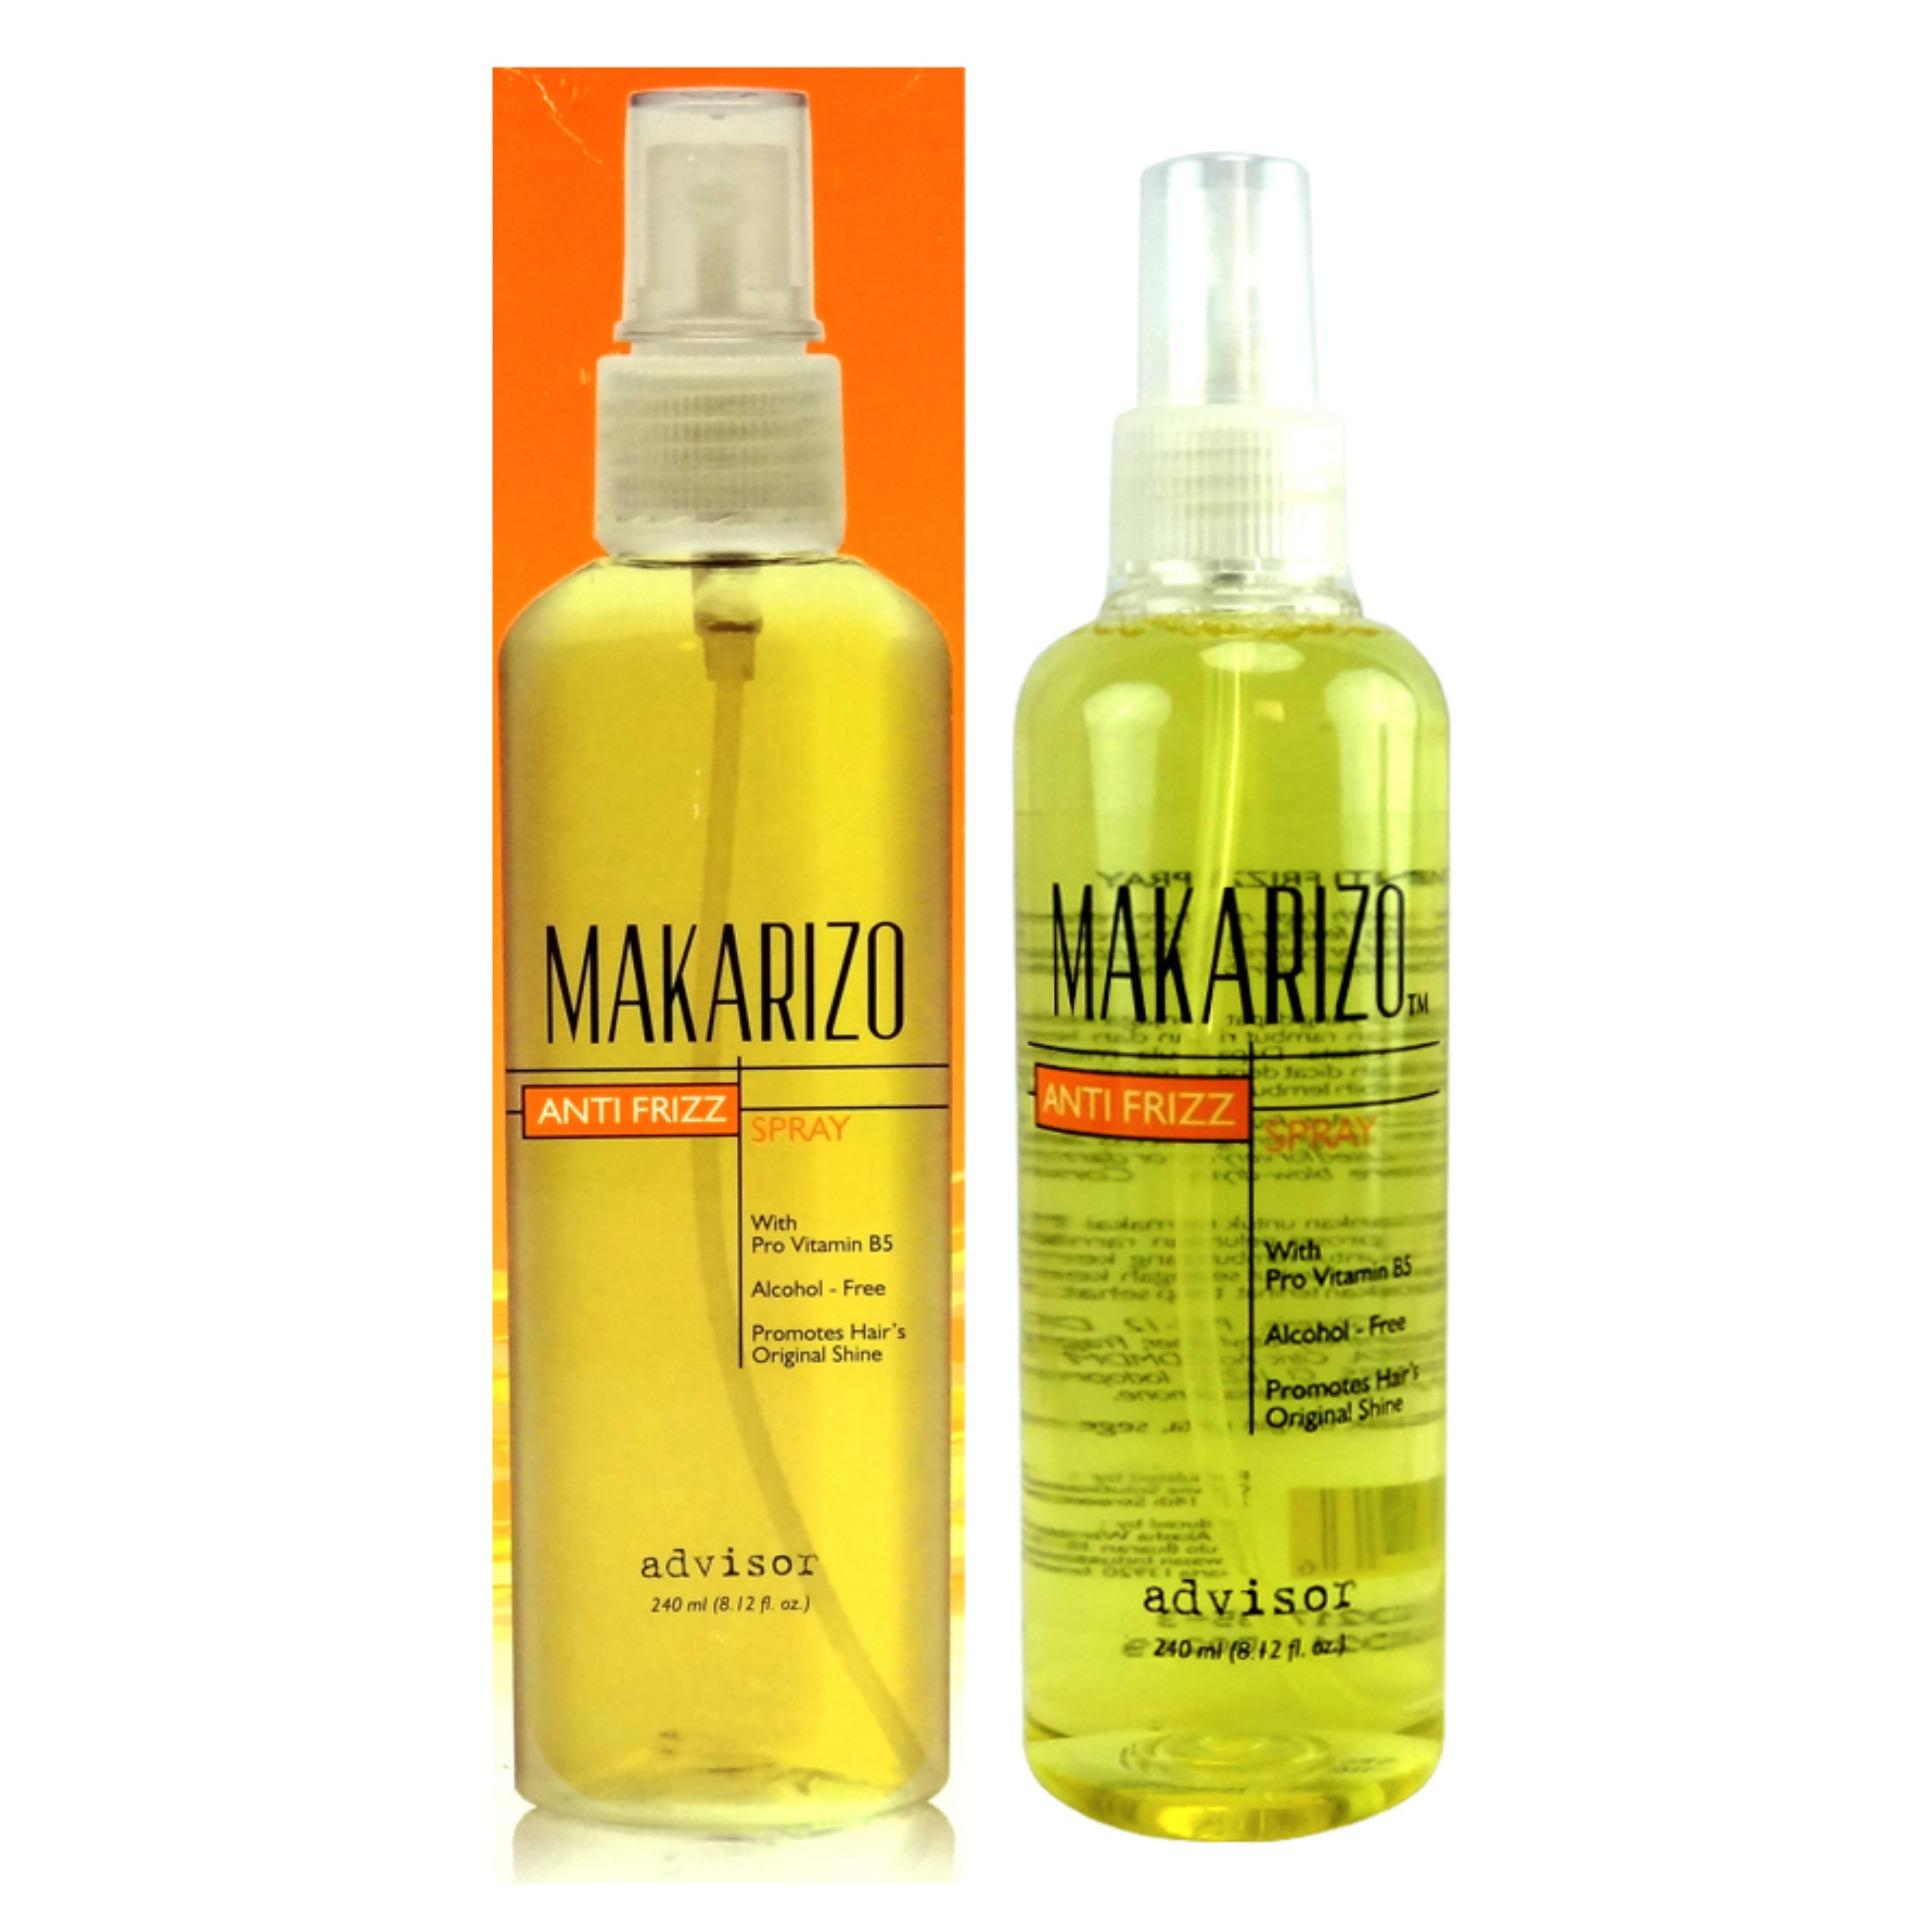 Iklan Makarizo Anti Frizz Spray Advisor 240Ml